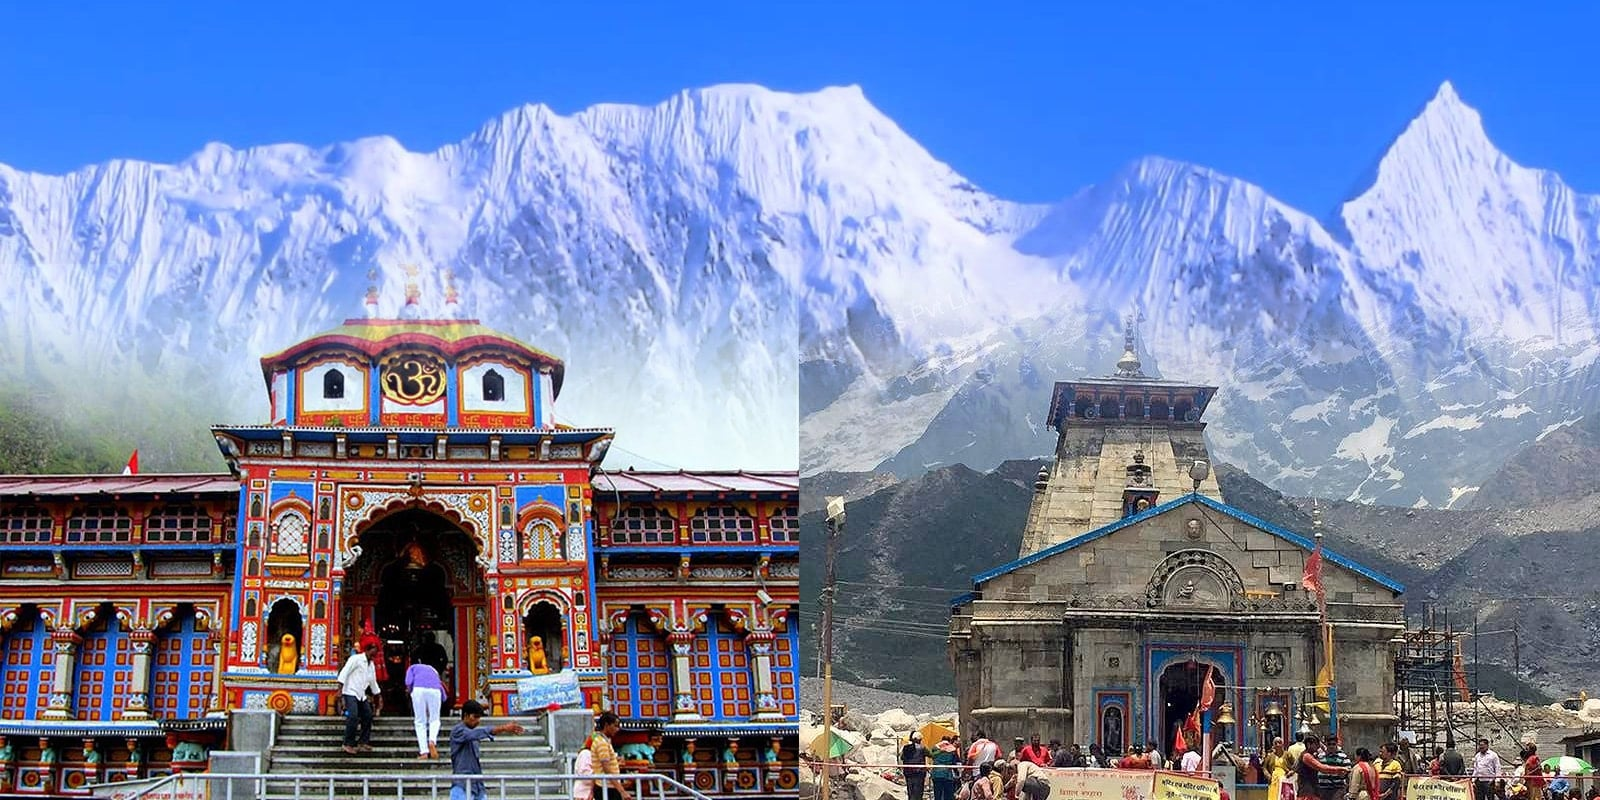 kedarnath by helicopter with Do Dham Yatra Kedarnath Badrinath on Pakistan Receives 4 Advanced Attack Helicopters From Russia as well Amarnath Yatra By Helicopter From Batlal 2016 additionally Char Dham Yatra from Rishikesh as well BXhqd8Gg21k as well Char Dham Yatra Tour Packages.